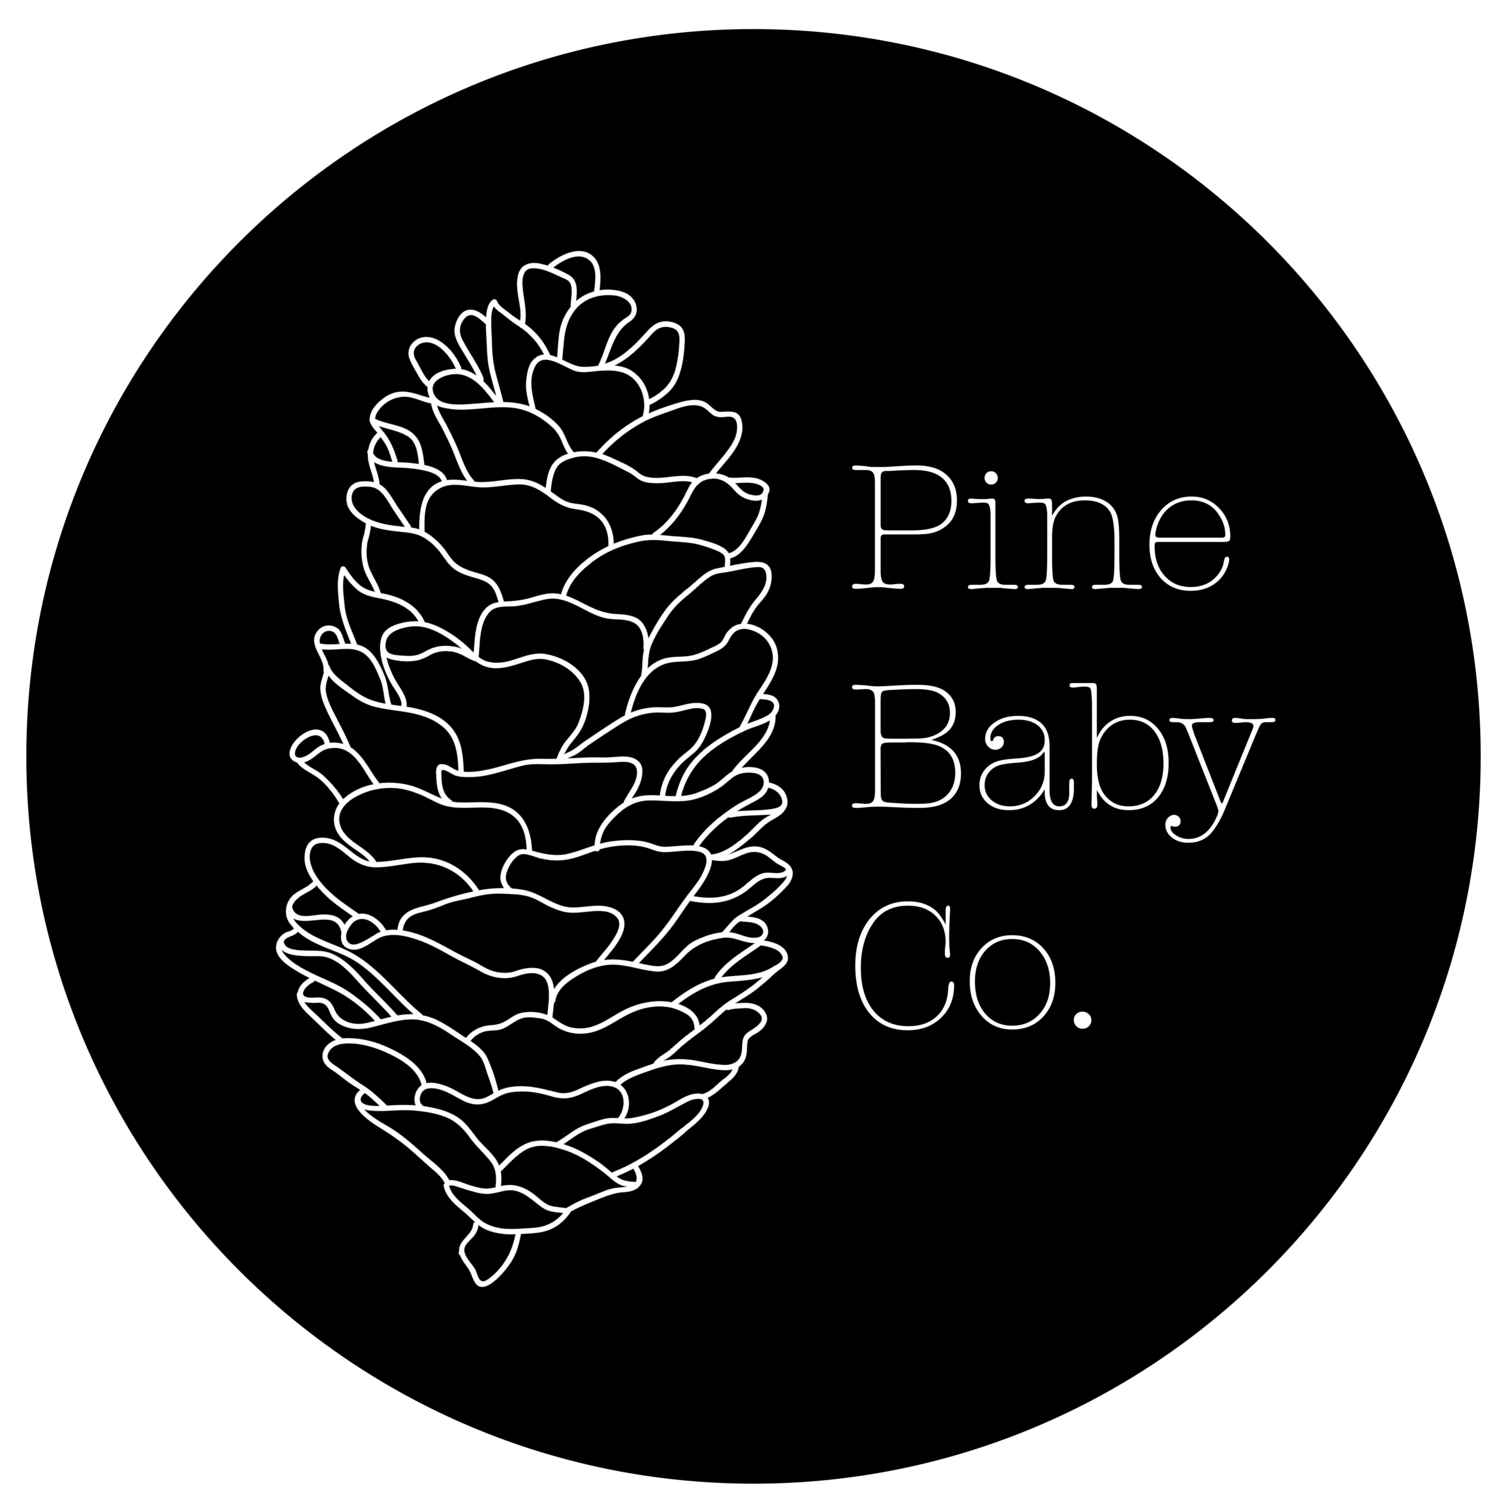 Pine Baby Co.